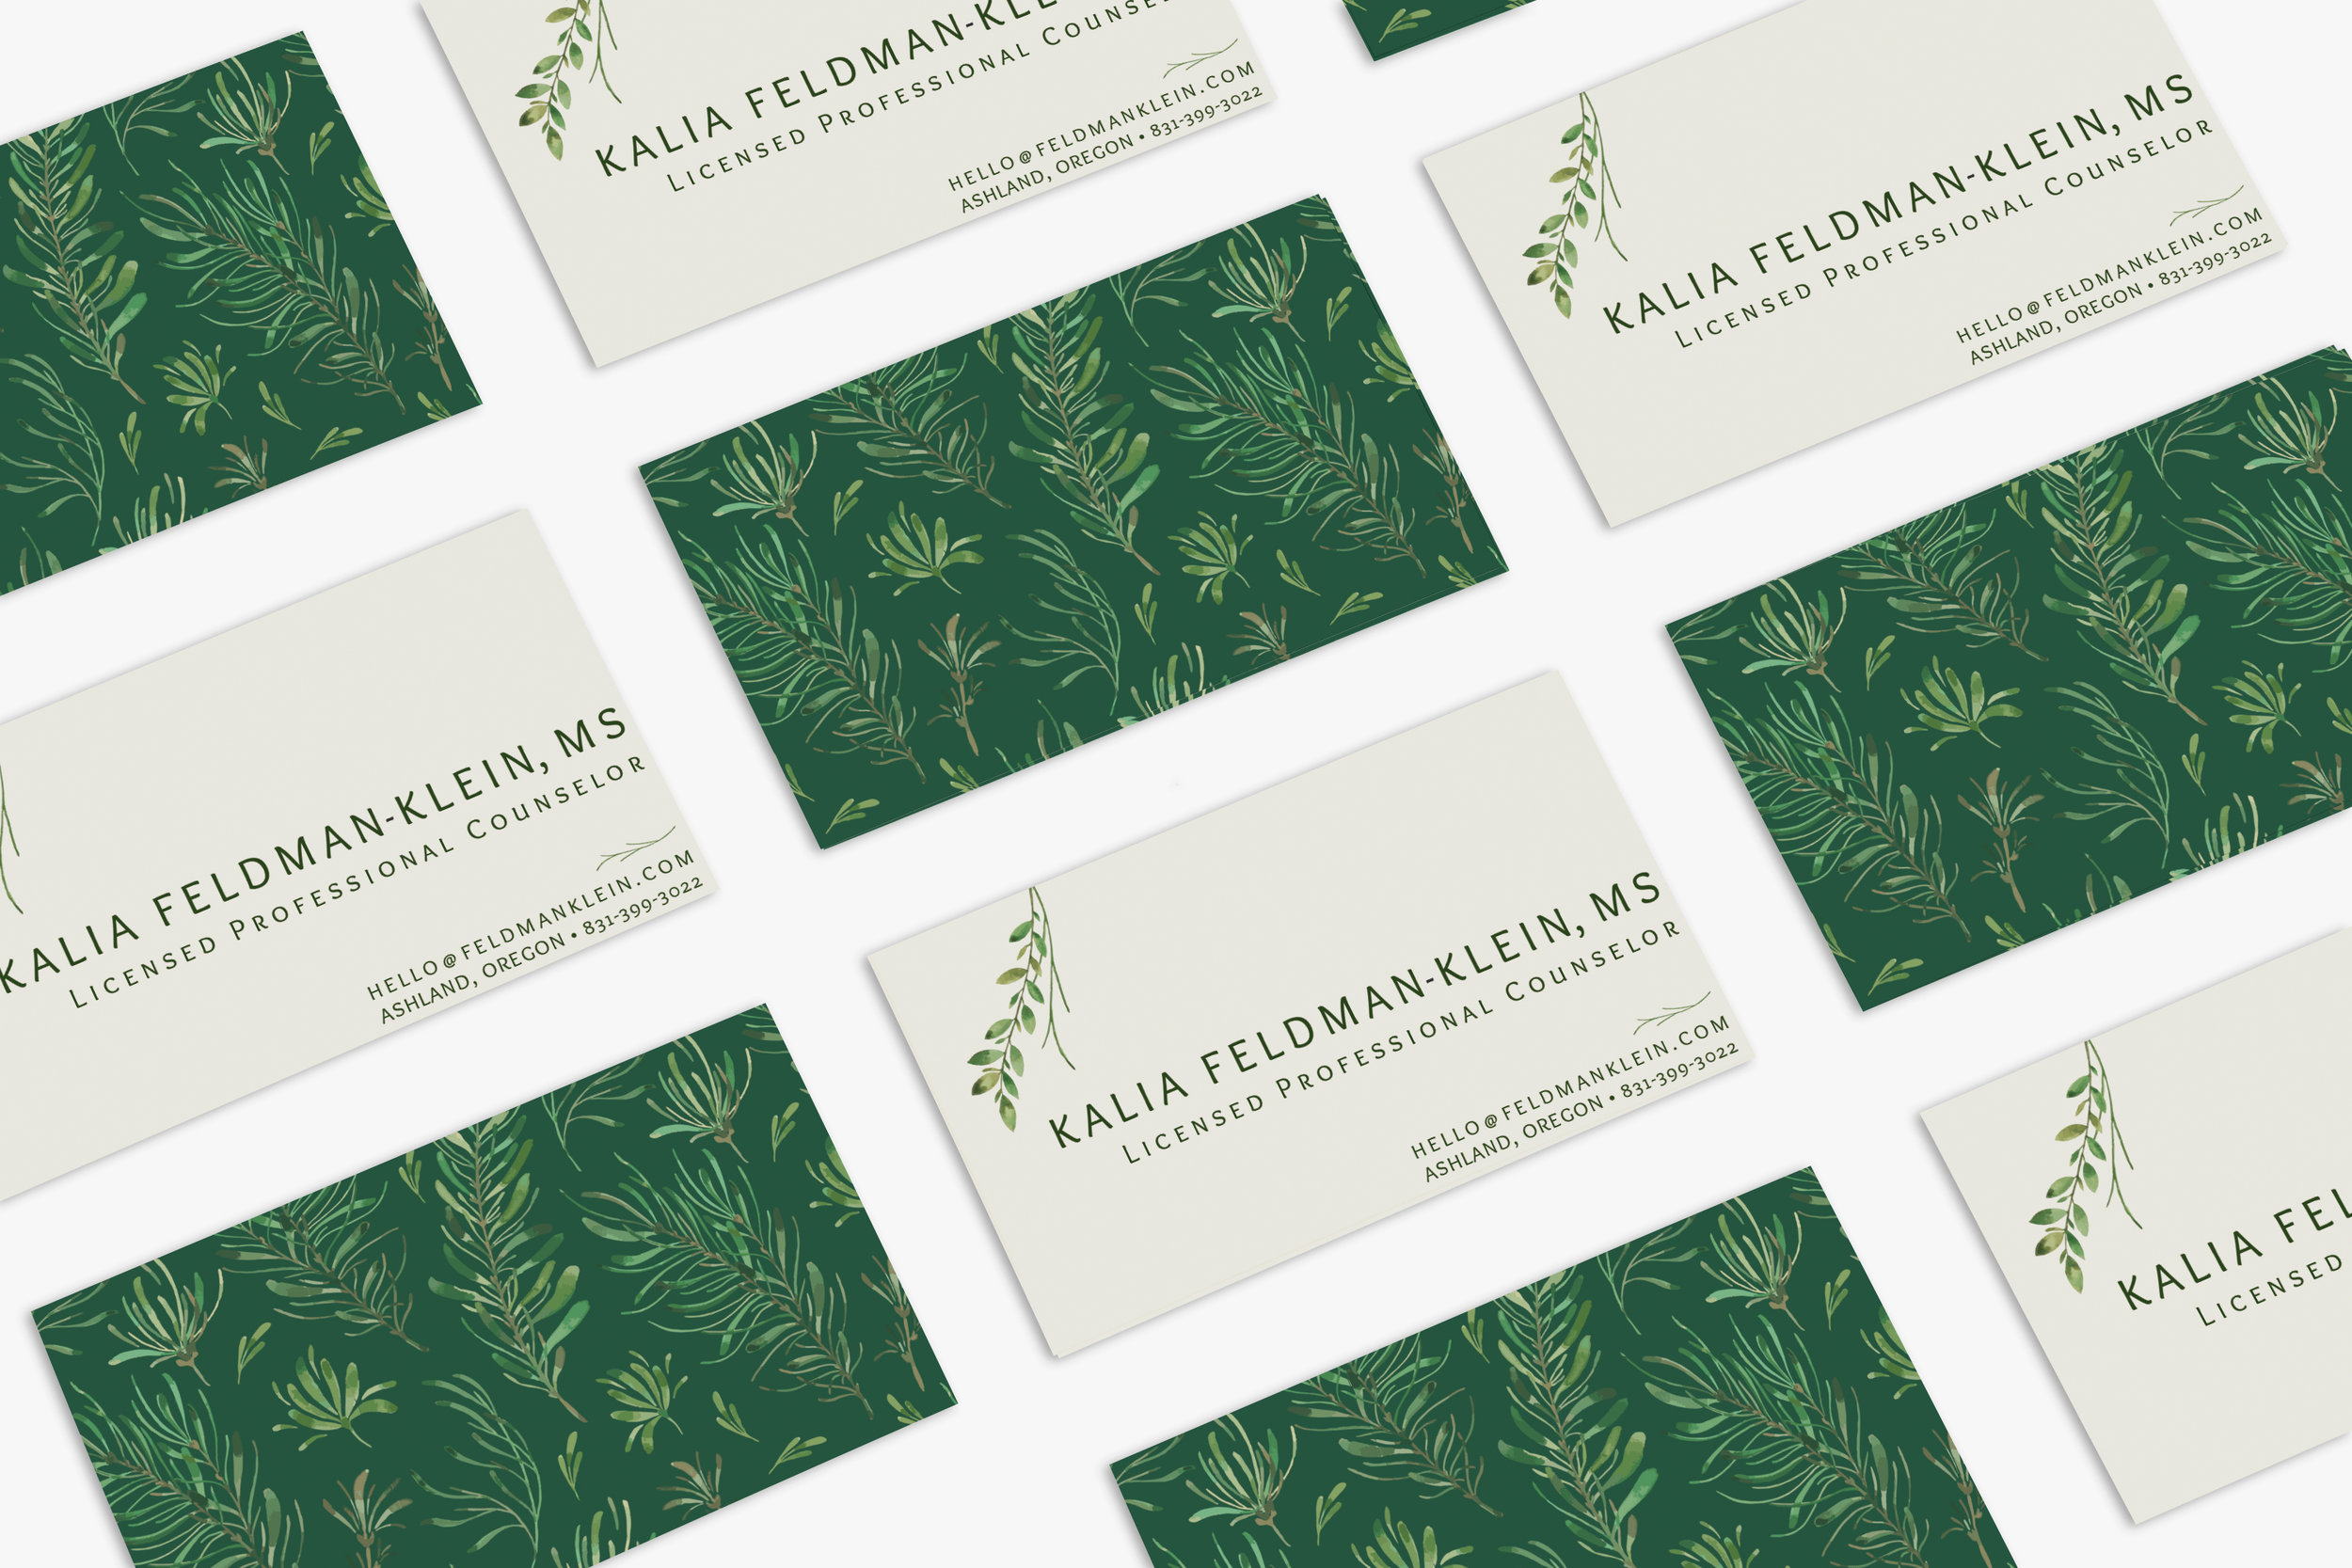 group of business cards with green and ivory background for a professional counselor